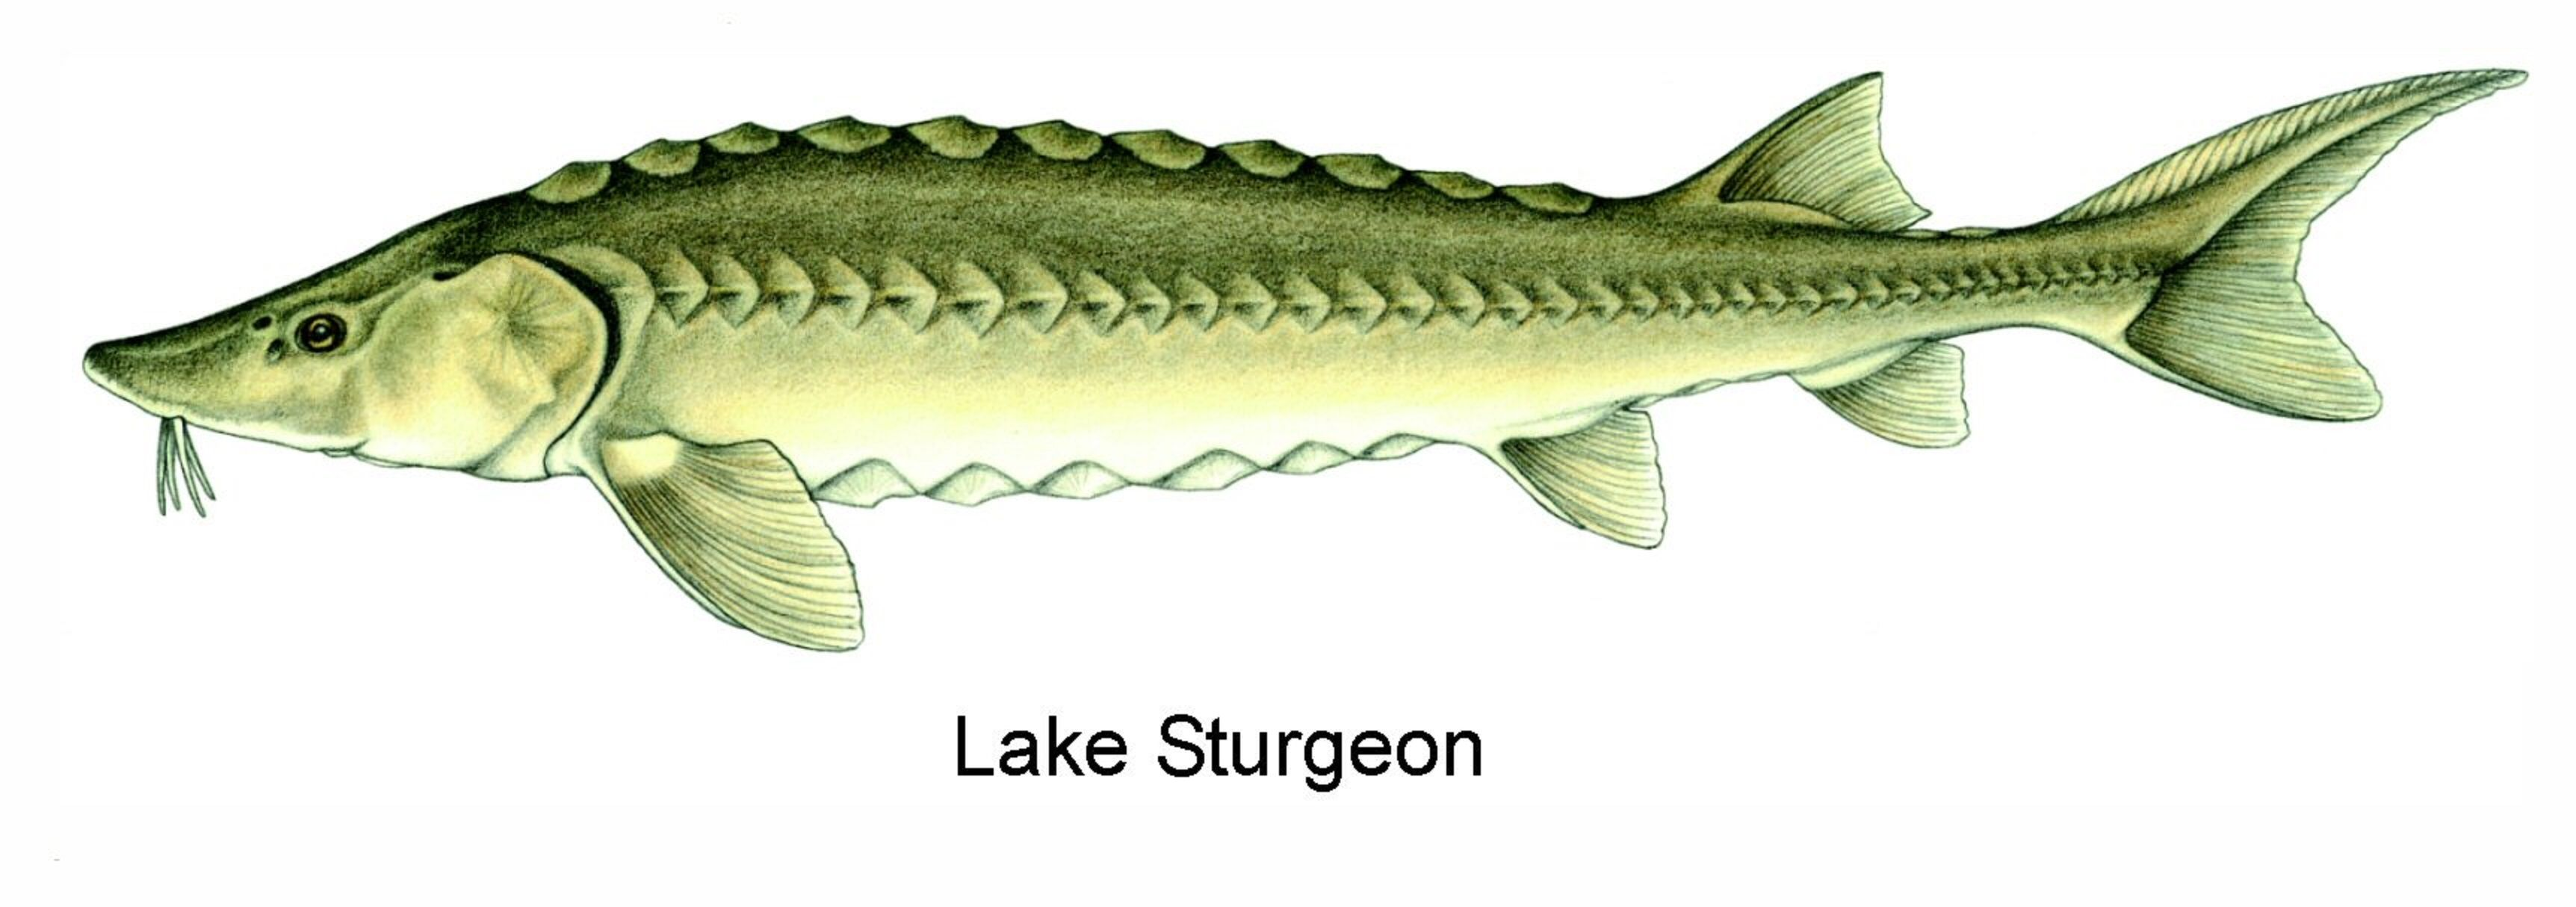 Art Illustration Lakes Freshwater Fish Lake Sturgeon Acipenser Fulvescens Is A Species Of Fish In The Acipenseridae Family Fish Art Lake Sturgeon Fish